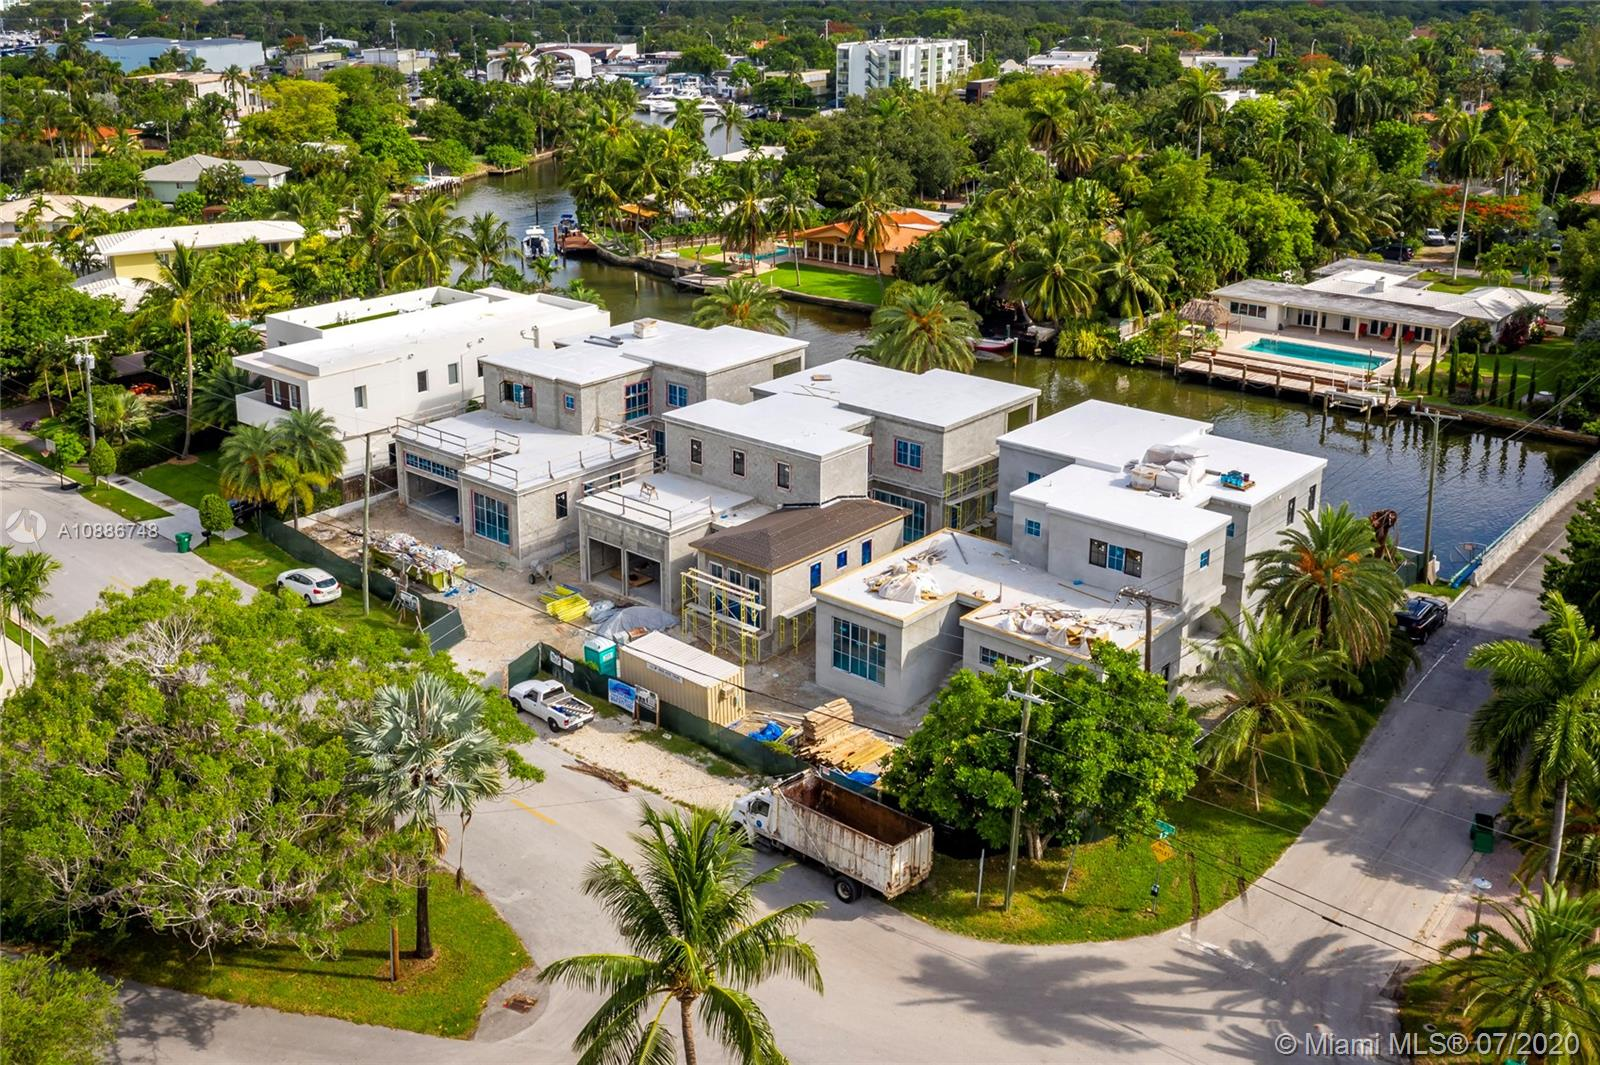 [UNDER CONSTRUCTION] Brand new luxury waterfront home in beautiful gated Belle Meade. Boater's dream with new seawall & dock, seconds to open bay with no bridges. Enjoy 5,385sf total, with 4br+office/4.5ba. Spacious light-filled living/kitchen/dining areas open to large covered lanai, summer kitchen, and salt-chlorinated pool with spa. Over 10' finished ceilings. Master features massive 16x10 custom closet. All bedrooms include en-suite bathrooms. True chefs kitchen includes full Subzero/Wolf appliances, huge island with built in table and PLENTY of storage in custom MIACUCINA Italian cabinetry. Impact windows/doors throughout. Permanent generator. Huge 2 car garage. Minutes from top private schools, Miami Beach, Design District, Wynwood, Downtown & more. ESTIMATED DELIVERY 3RD QTR 2020.